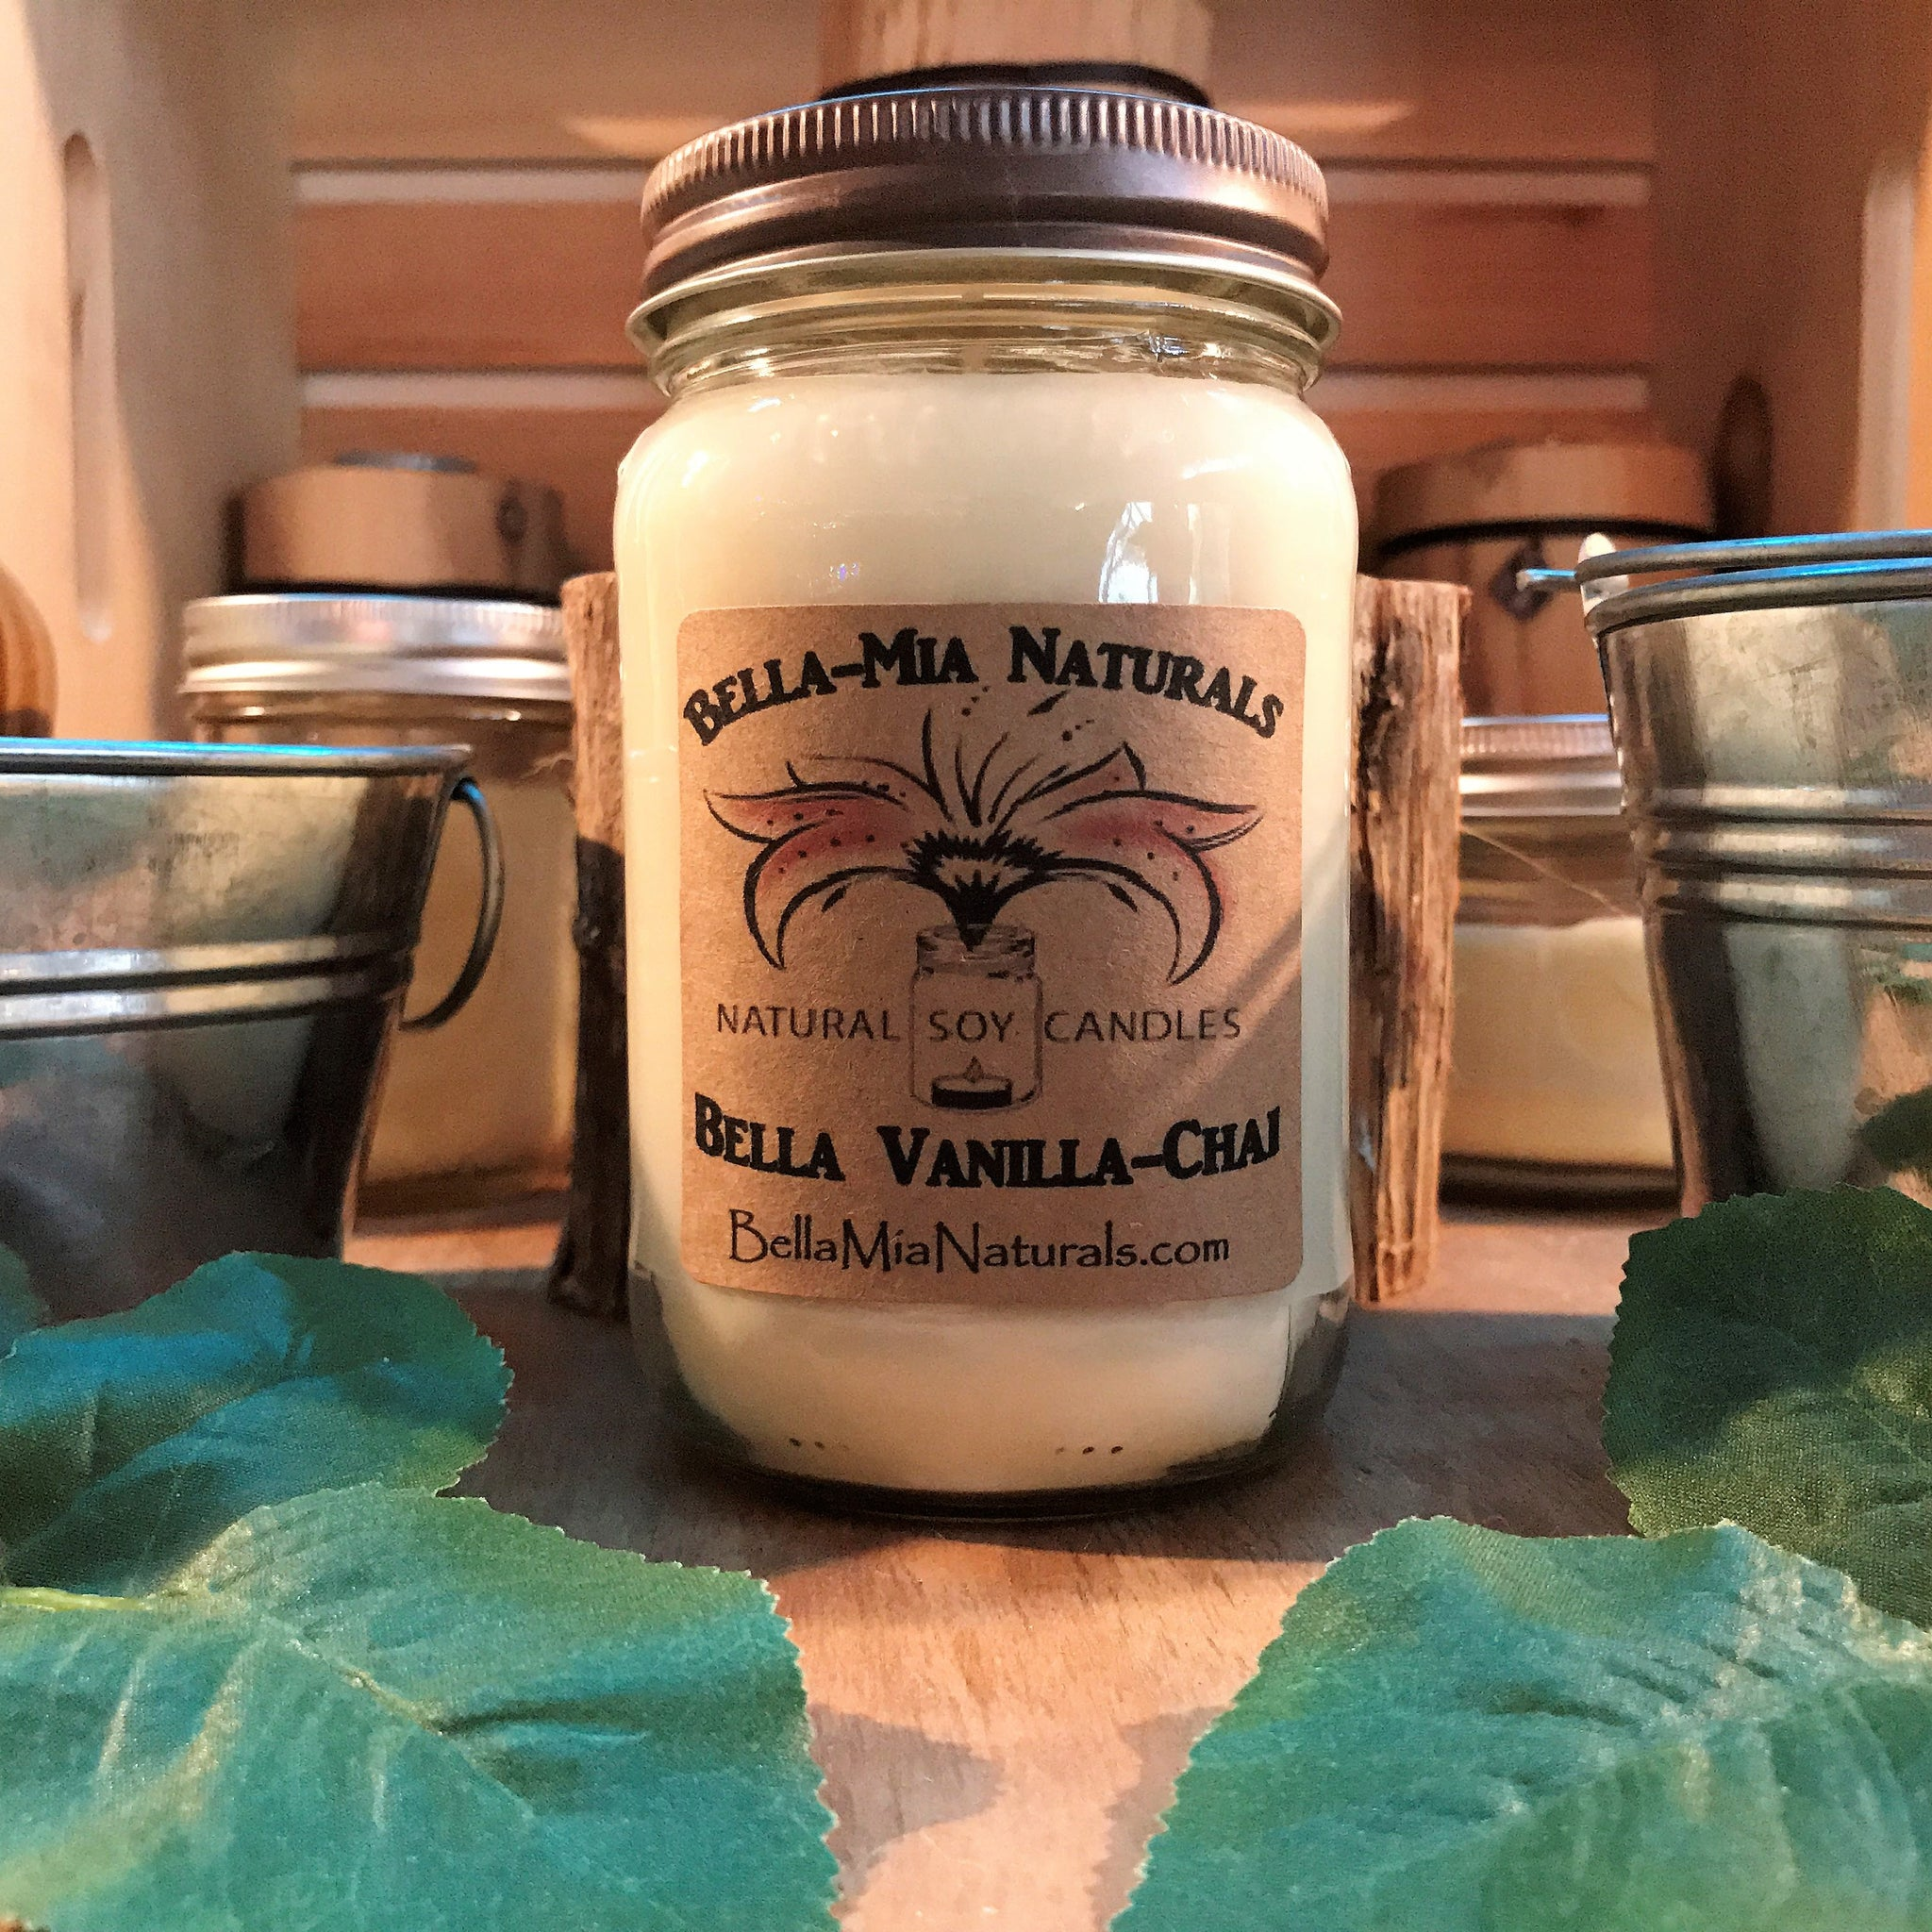 Bella Vanilla-Chai Natural Hand Poured Soy Candles